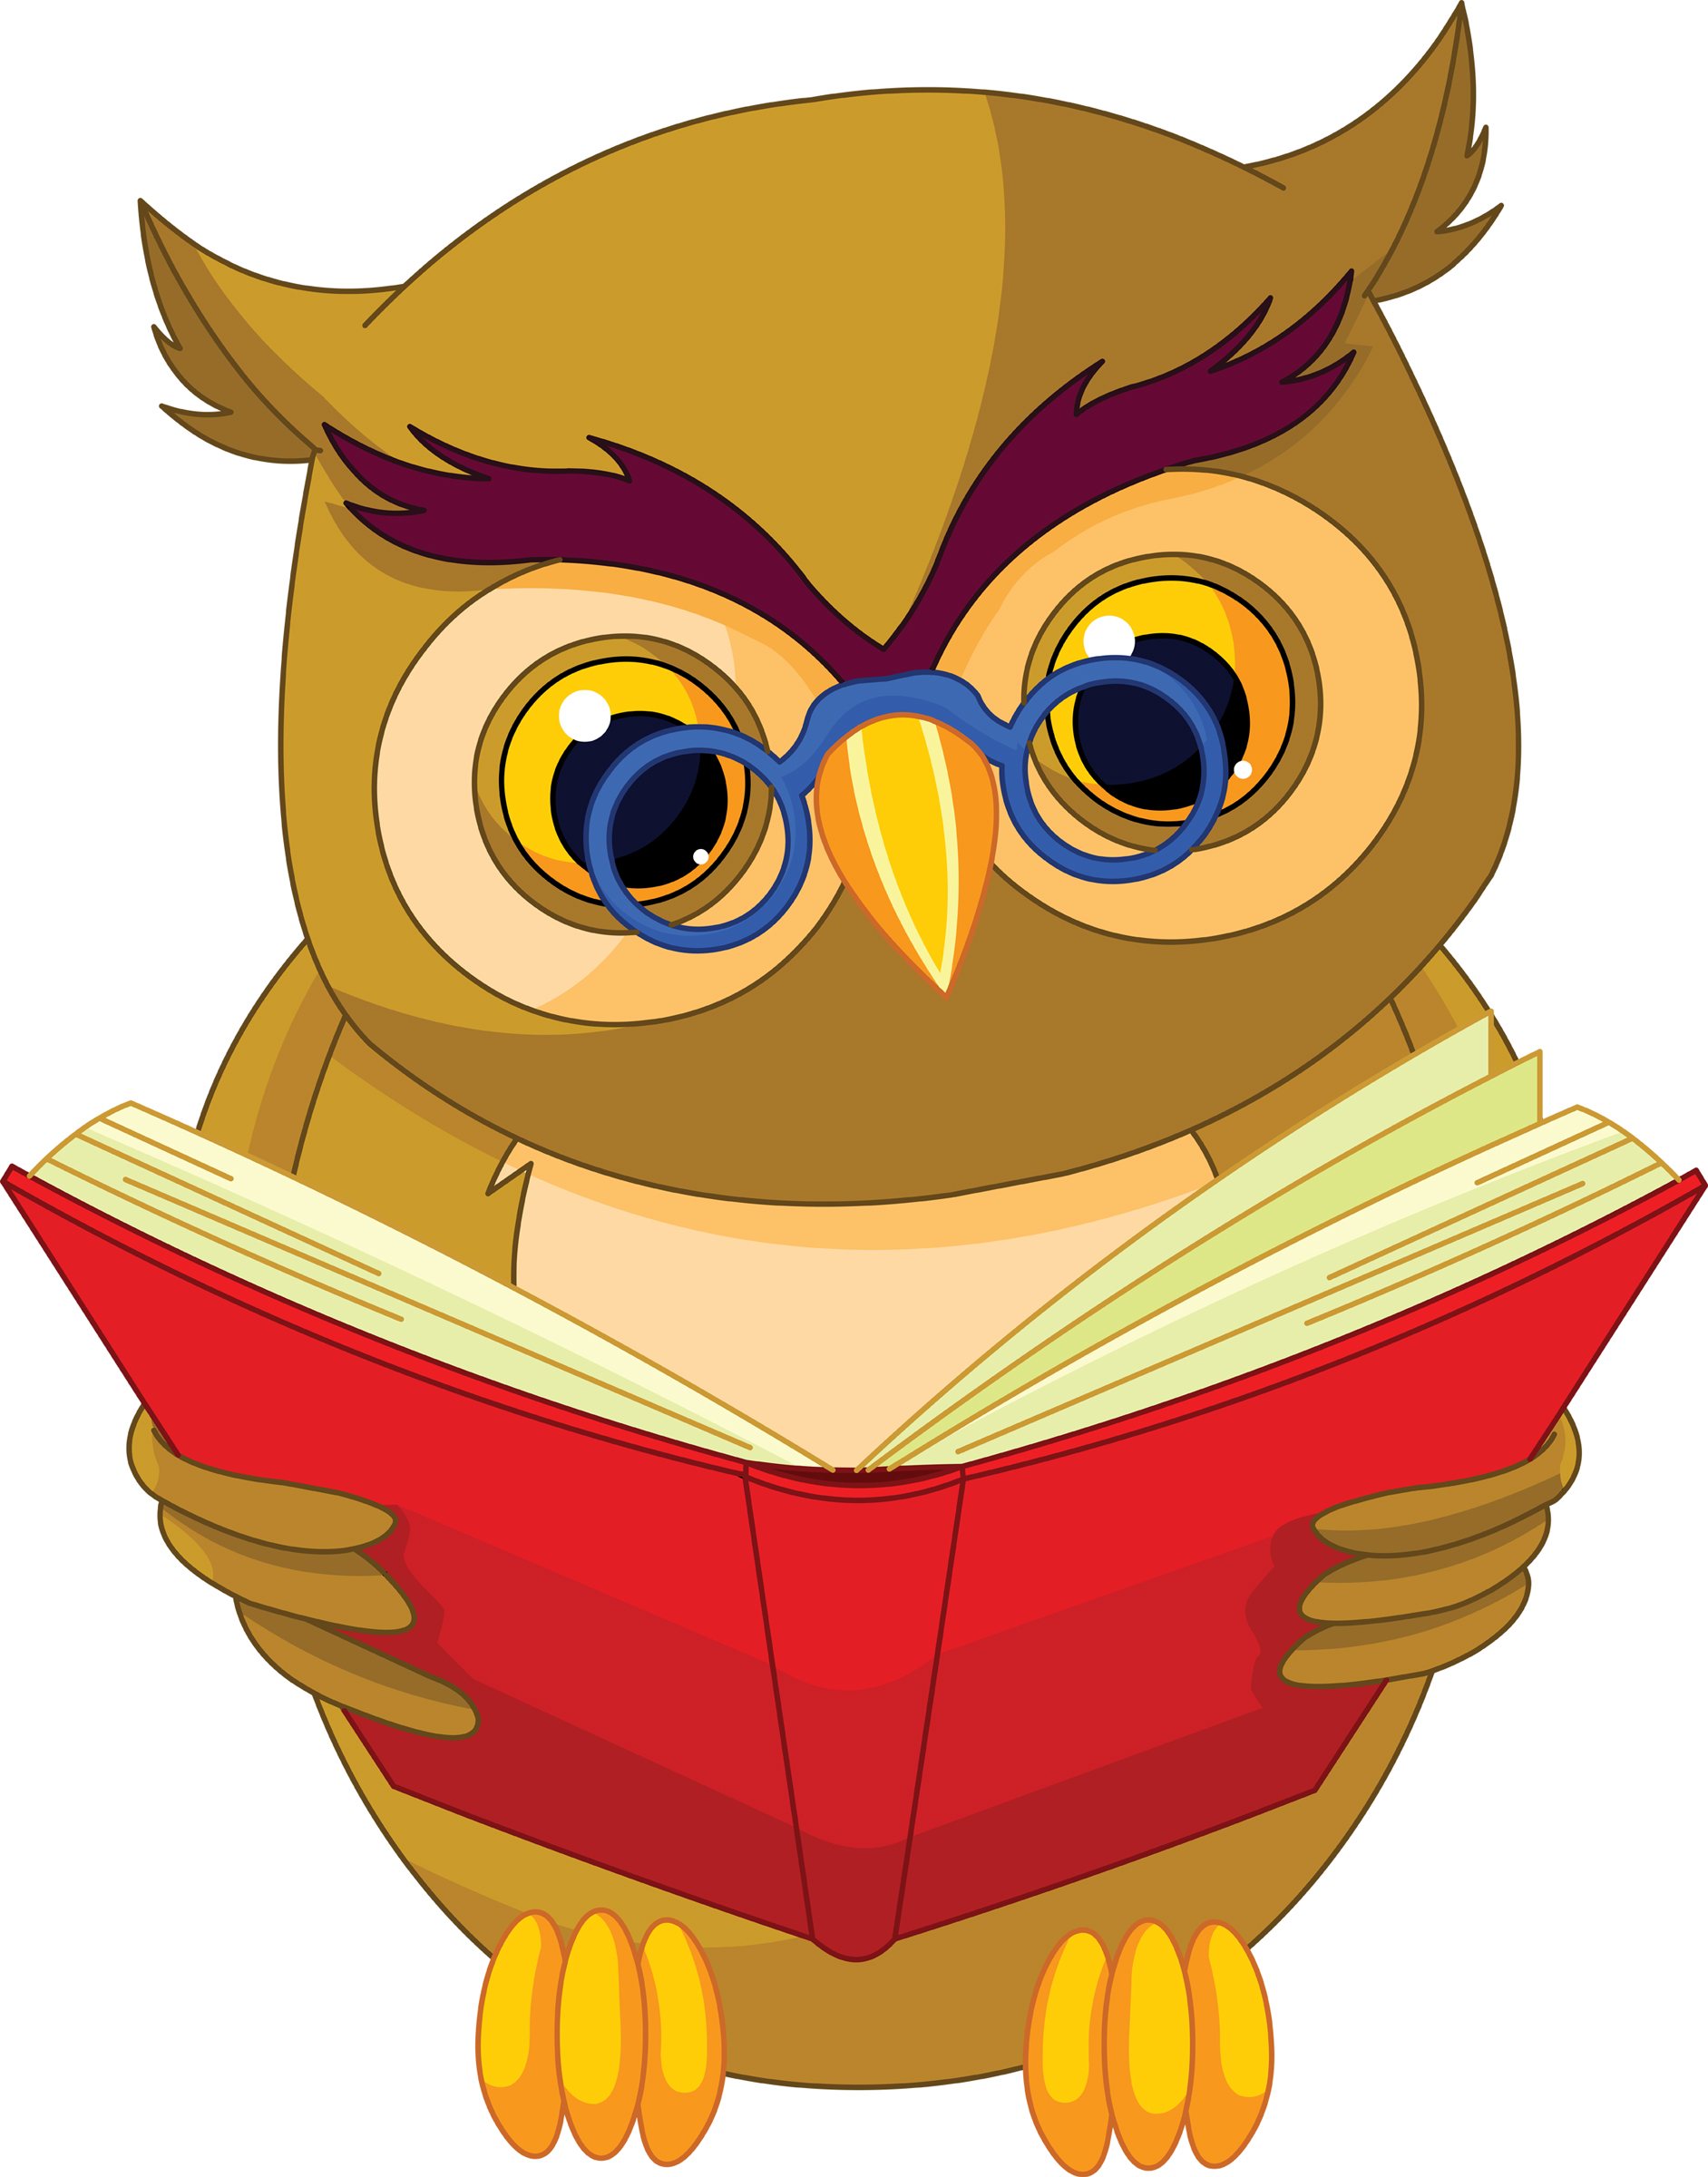 Wise Owl Reading Book Clipart-Wise Owl Reading Book Clipart-18